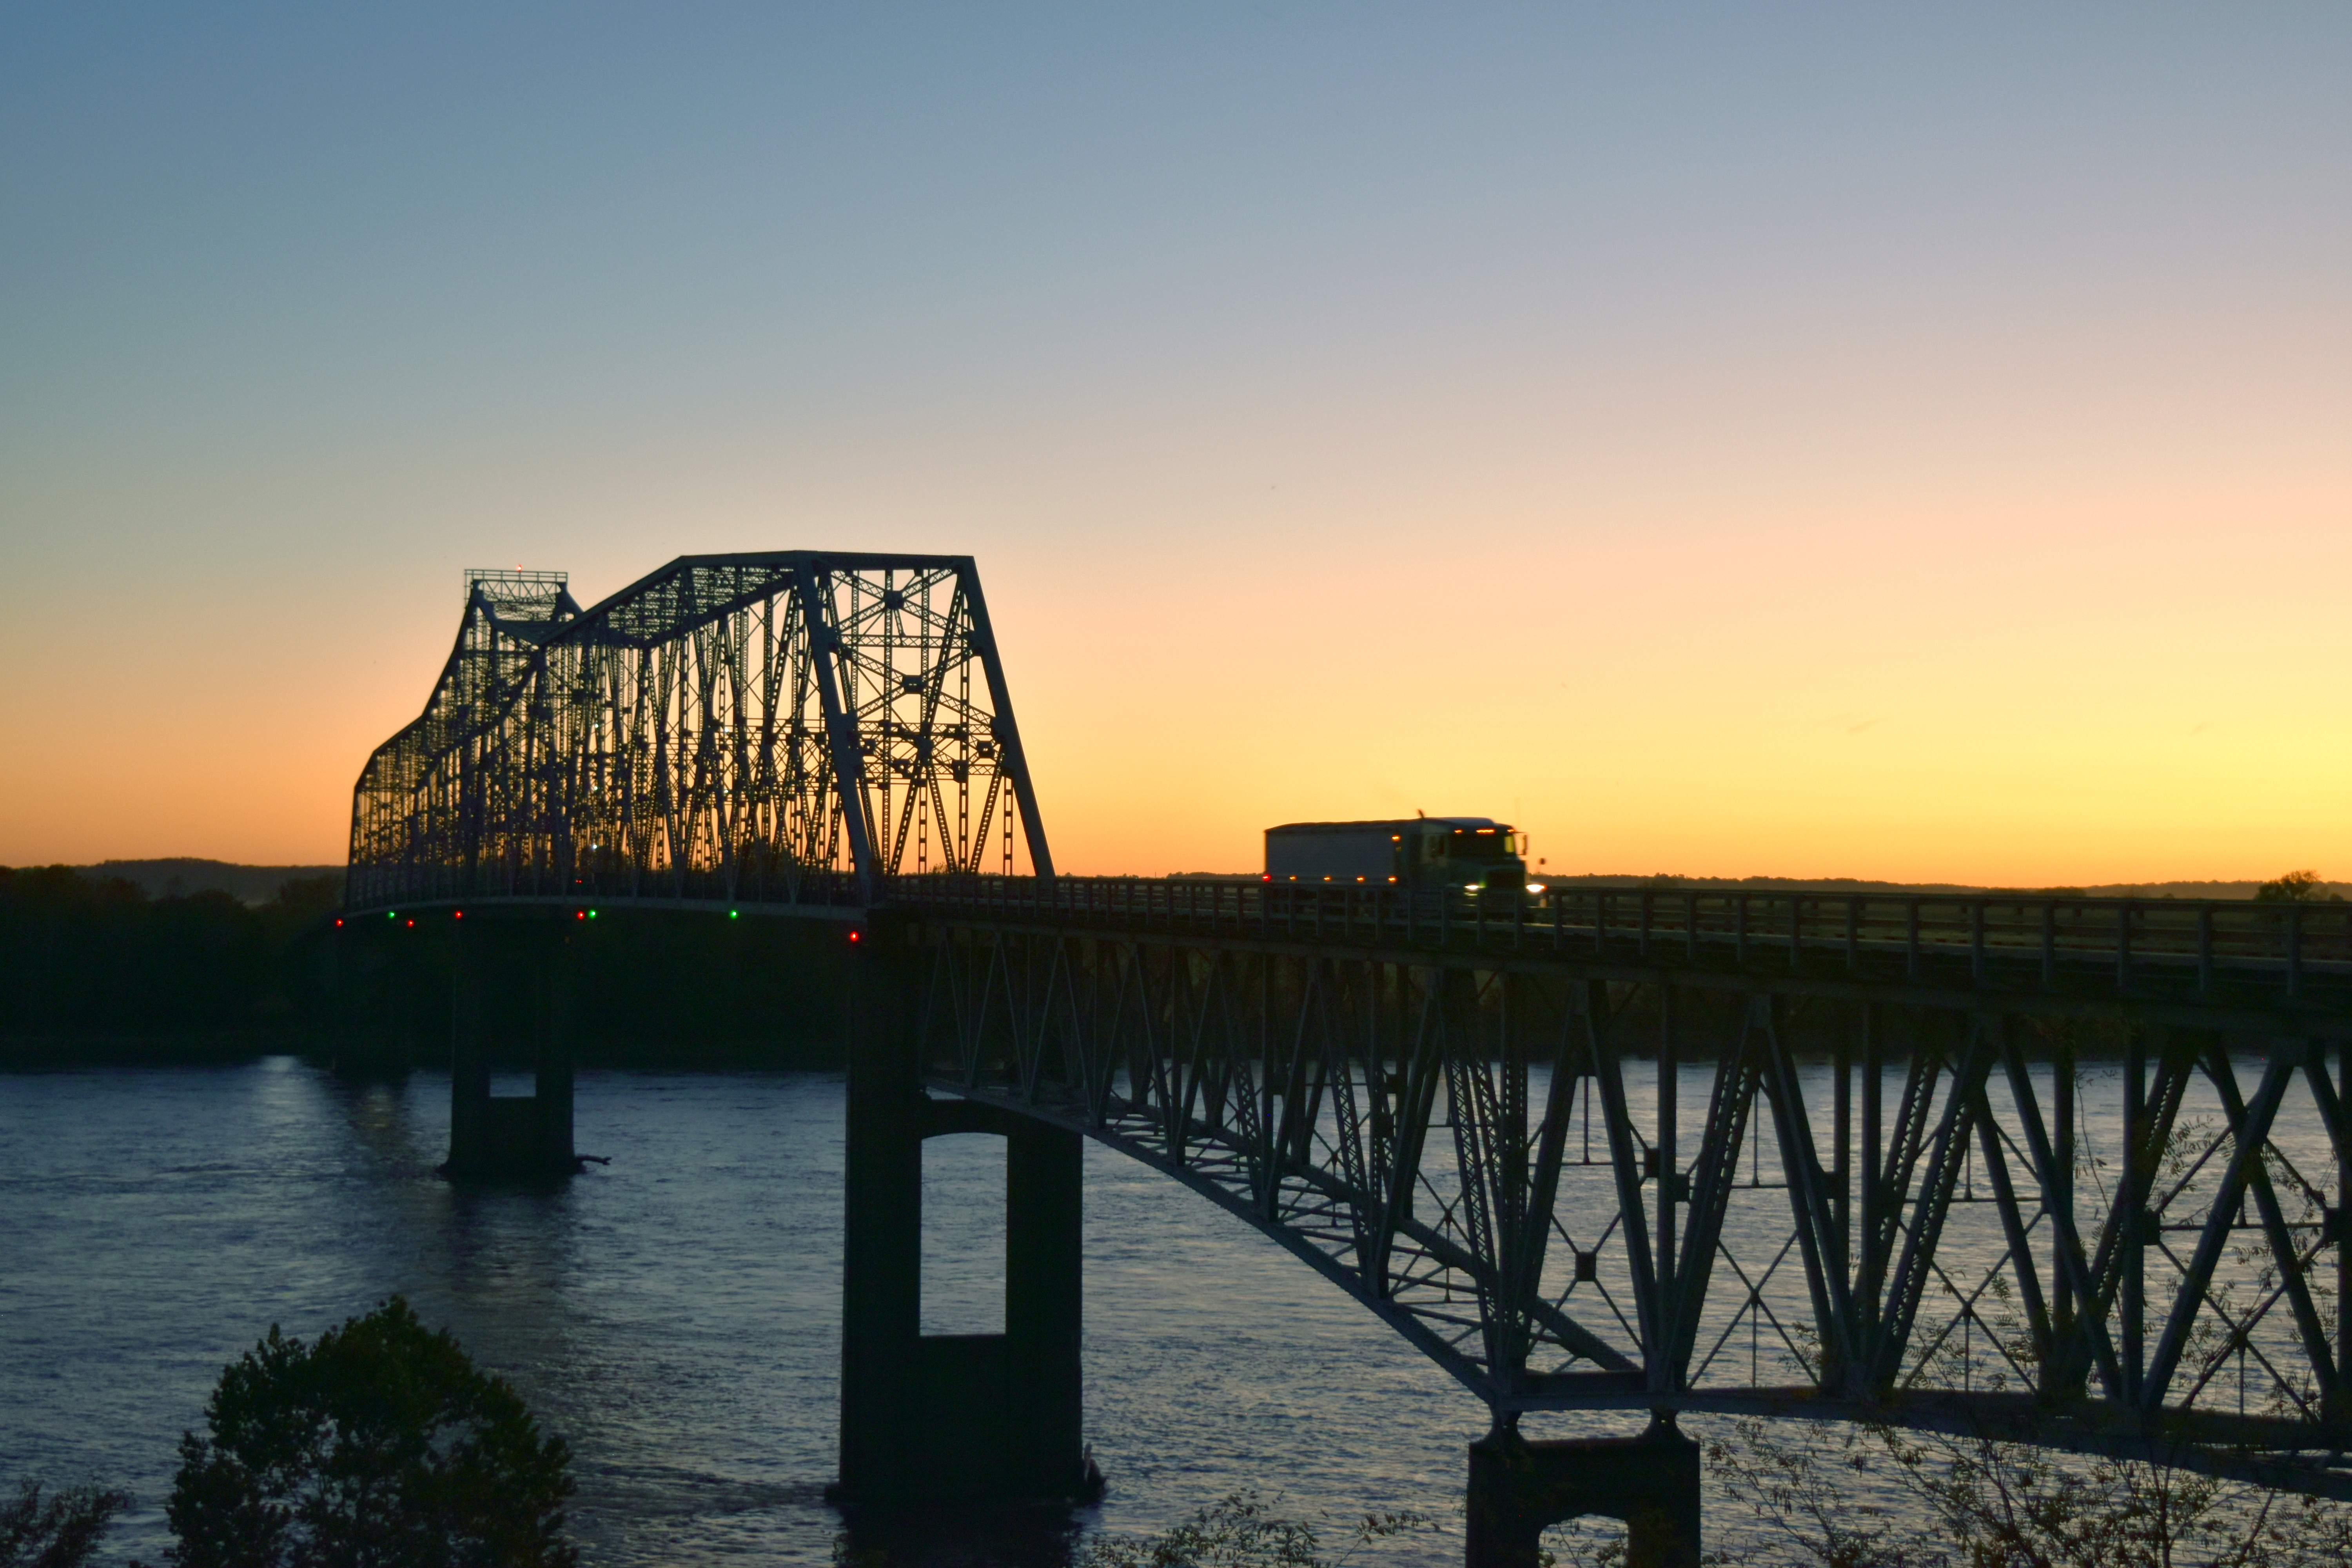 A grain truck crosses the Chester Bridge at sunset on Tuesday. The Community Advisory Group met for its second meeting on Oct. 12 at Perryville City Hall and learned more about accident data and inspection reports on the 75-year-old, World War II-era bridge.